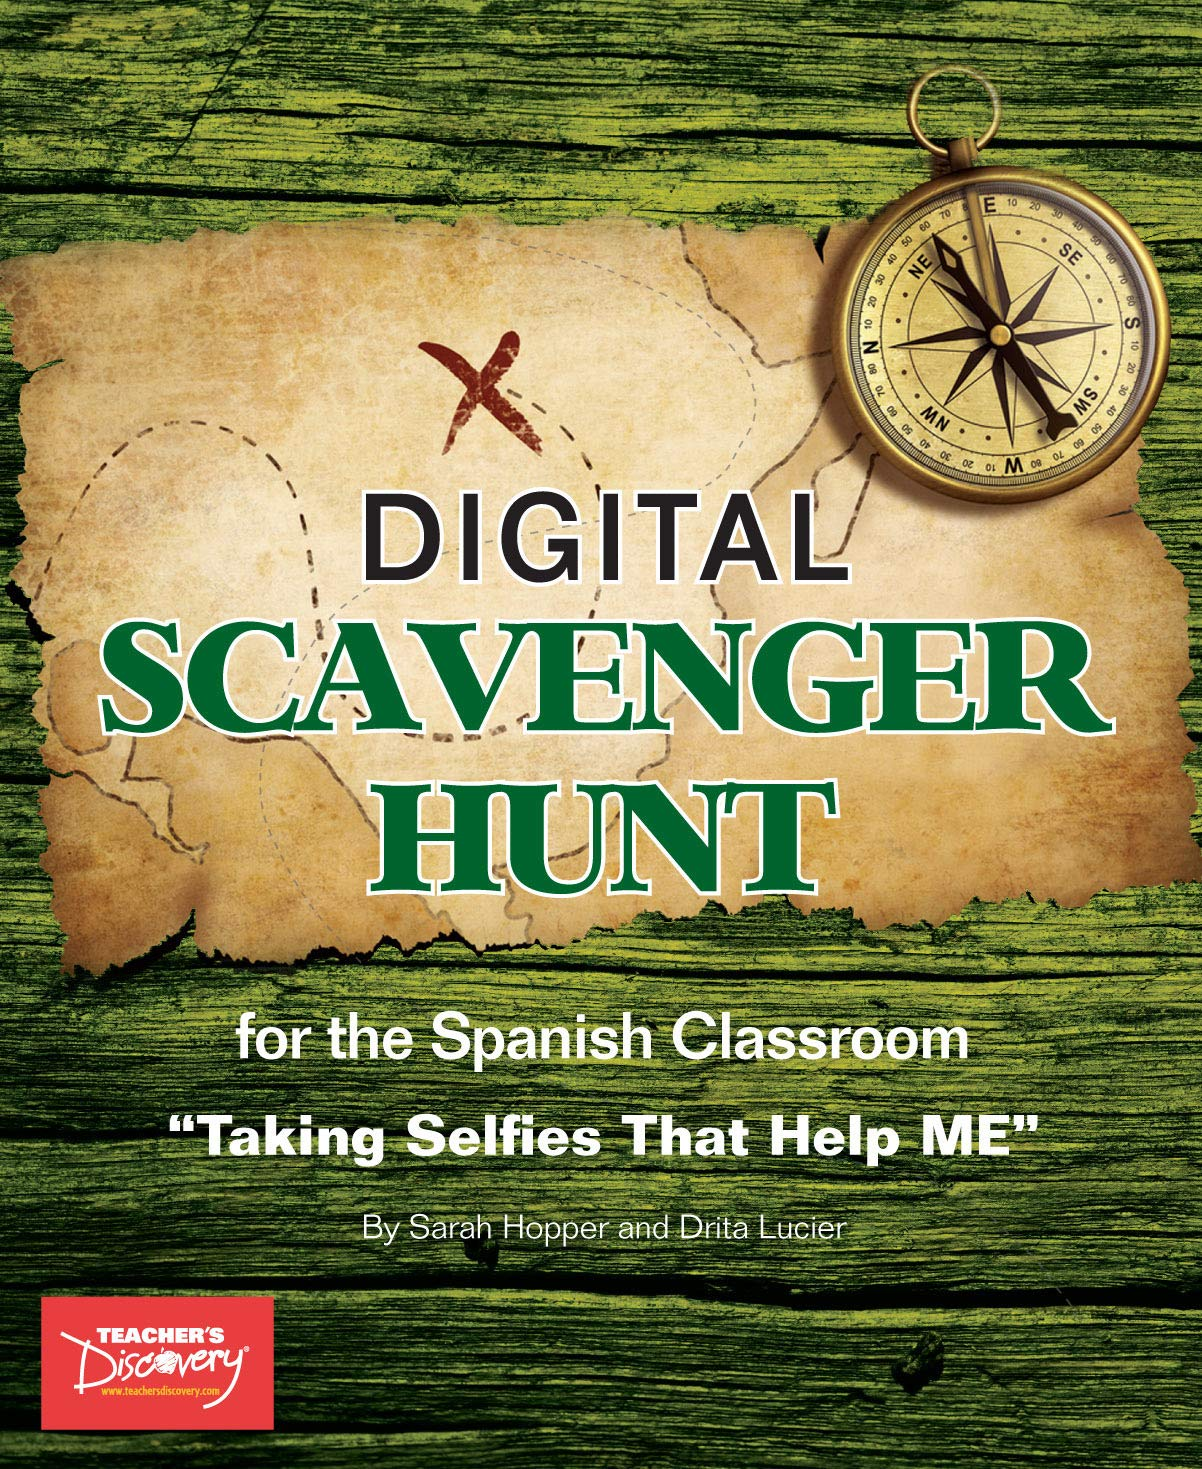 Spanish Digital Scavenger Hunt Book by Teacher's Discovery